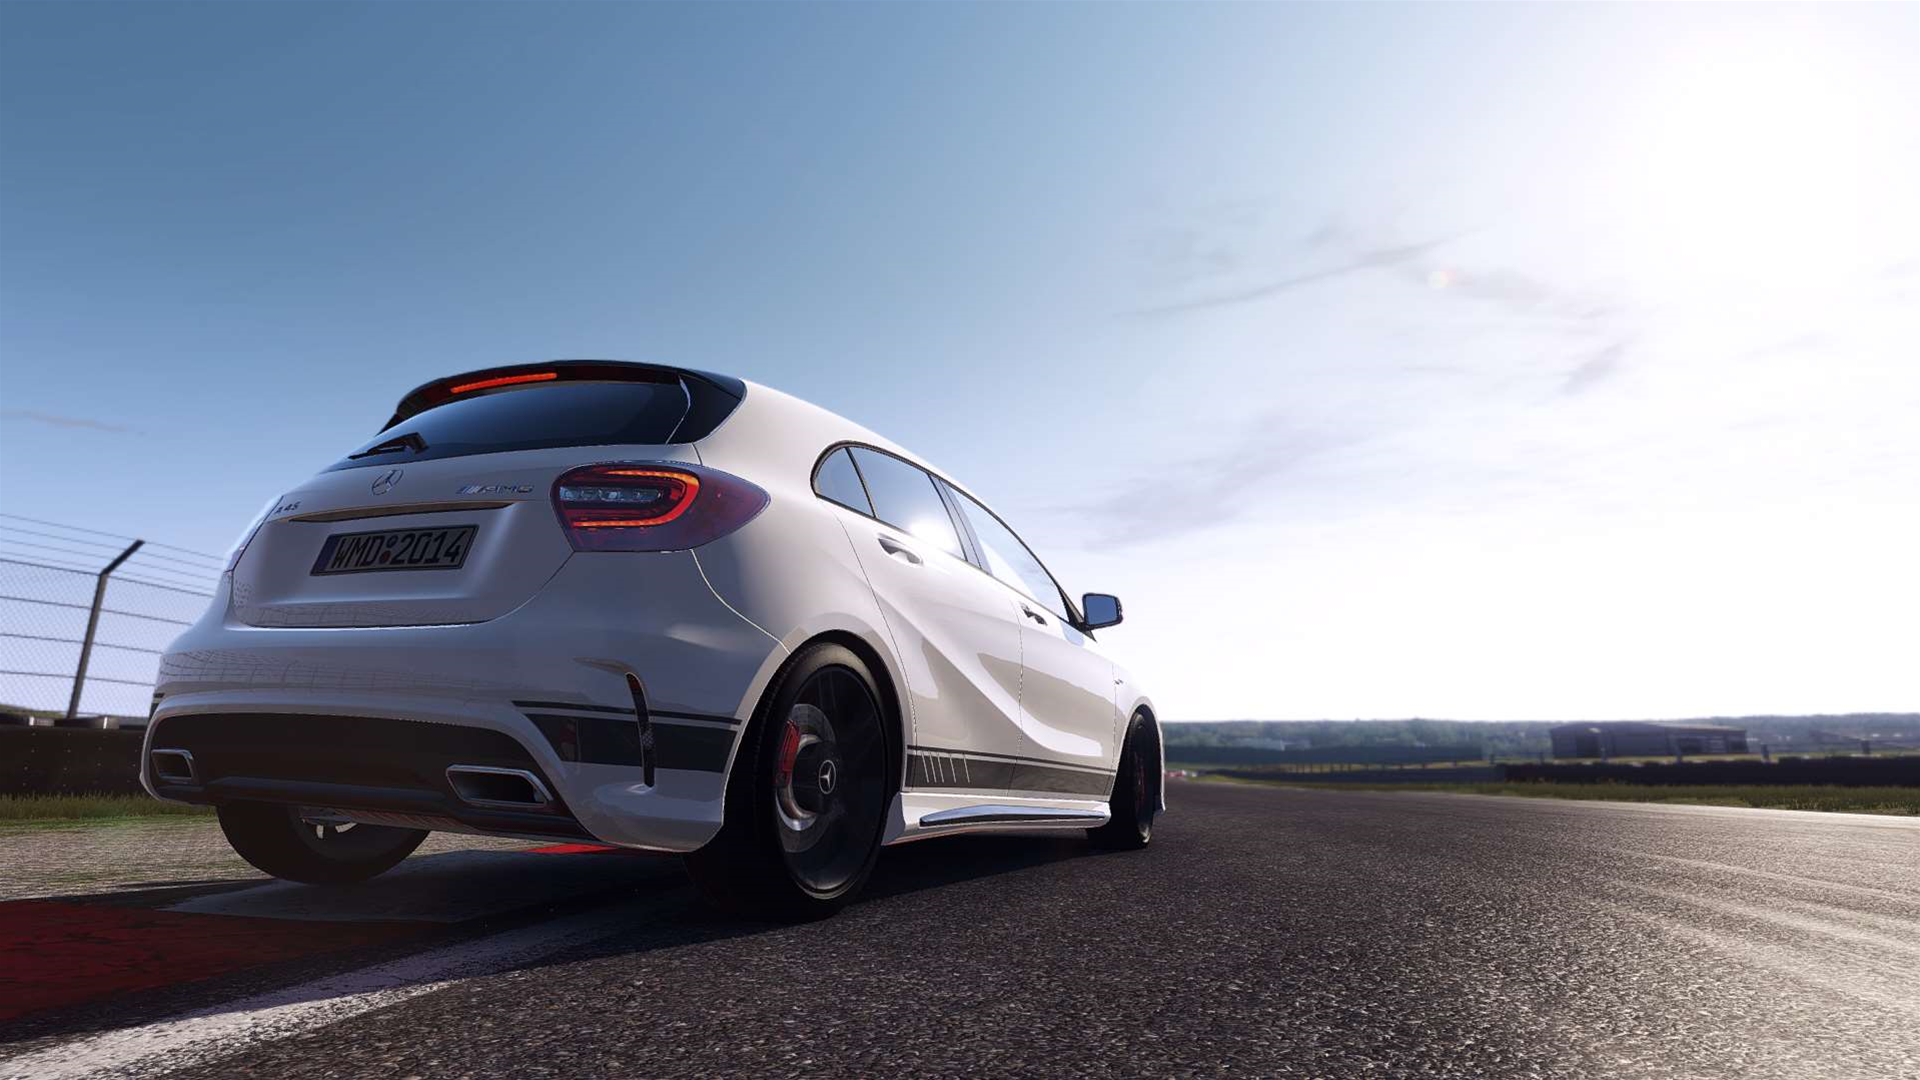 Five new SCREENS from Project CARS